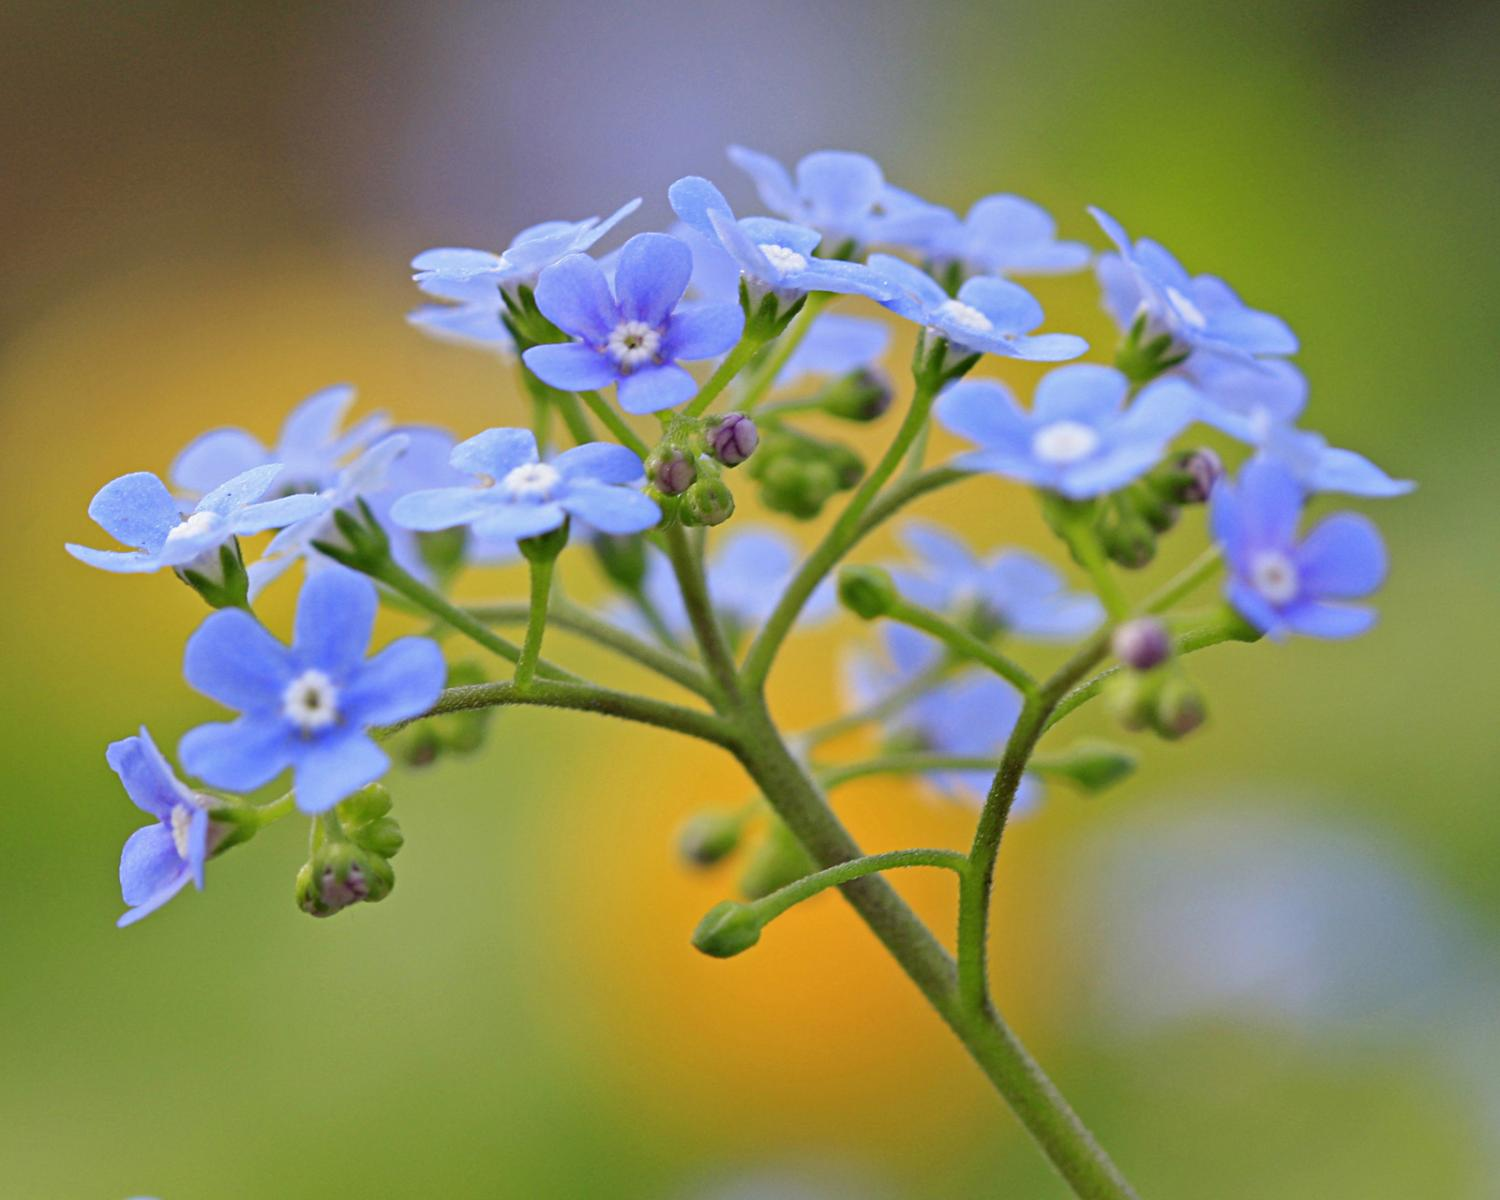 Skeiescapes Flowers Blue Flowers Skeiescapes Galleries